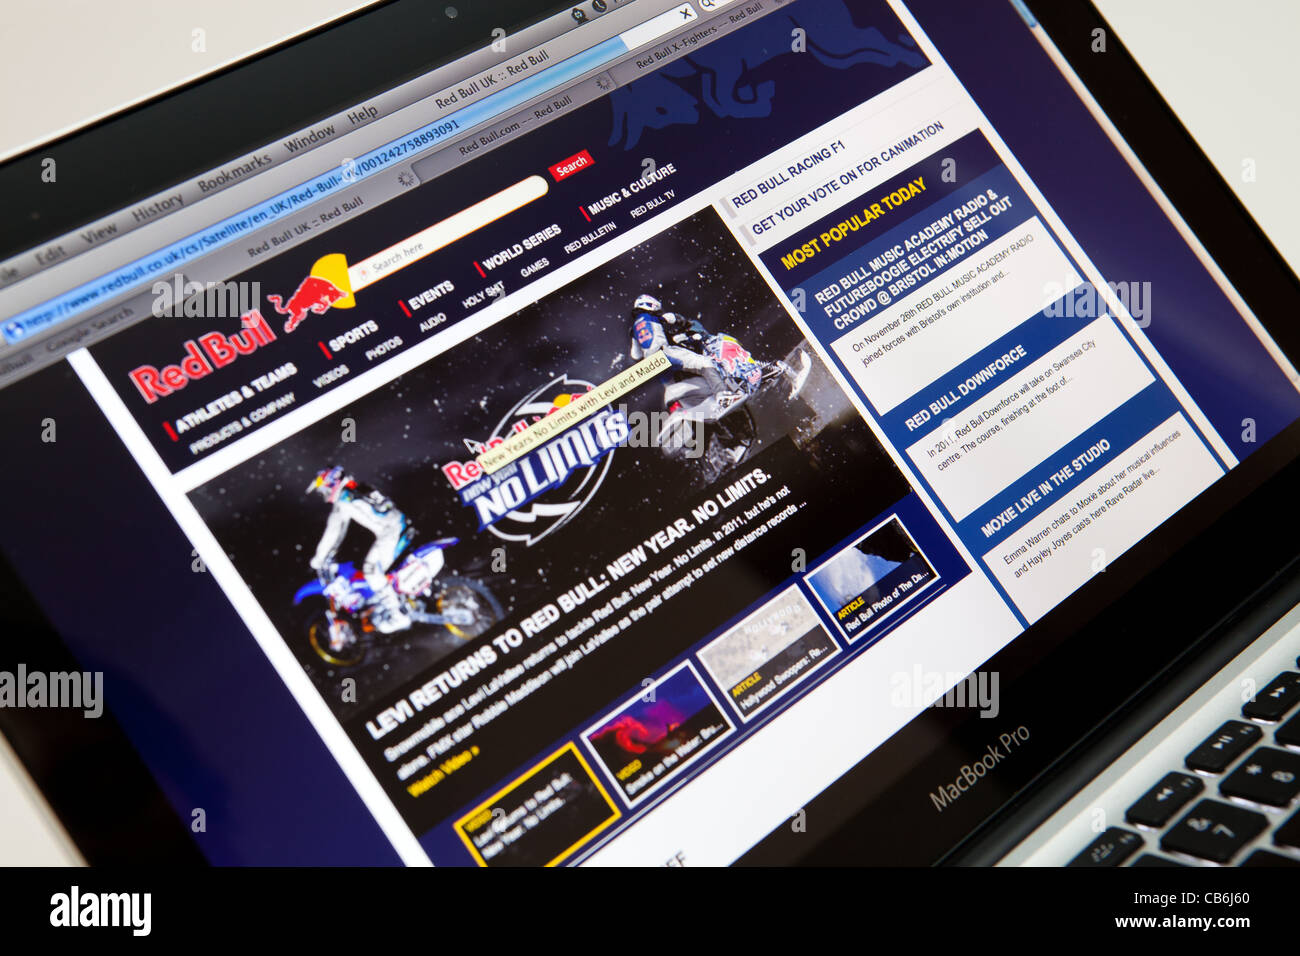 REDBULL Website Screen shot of web page Stock Photo: 41327944 - Alamy